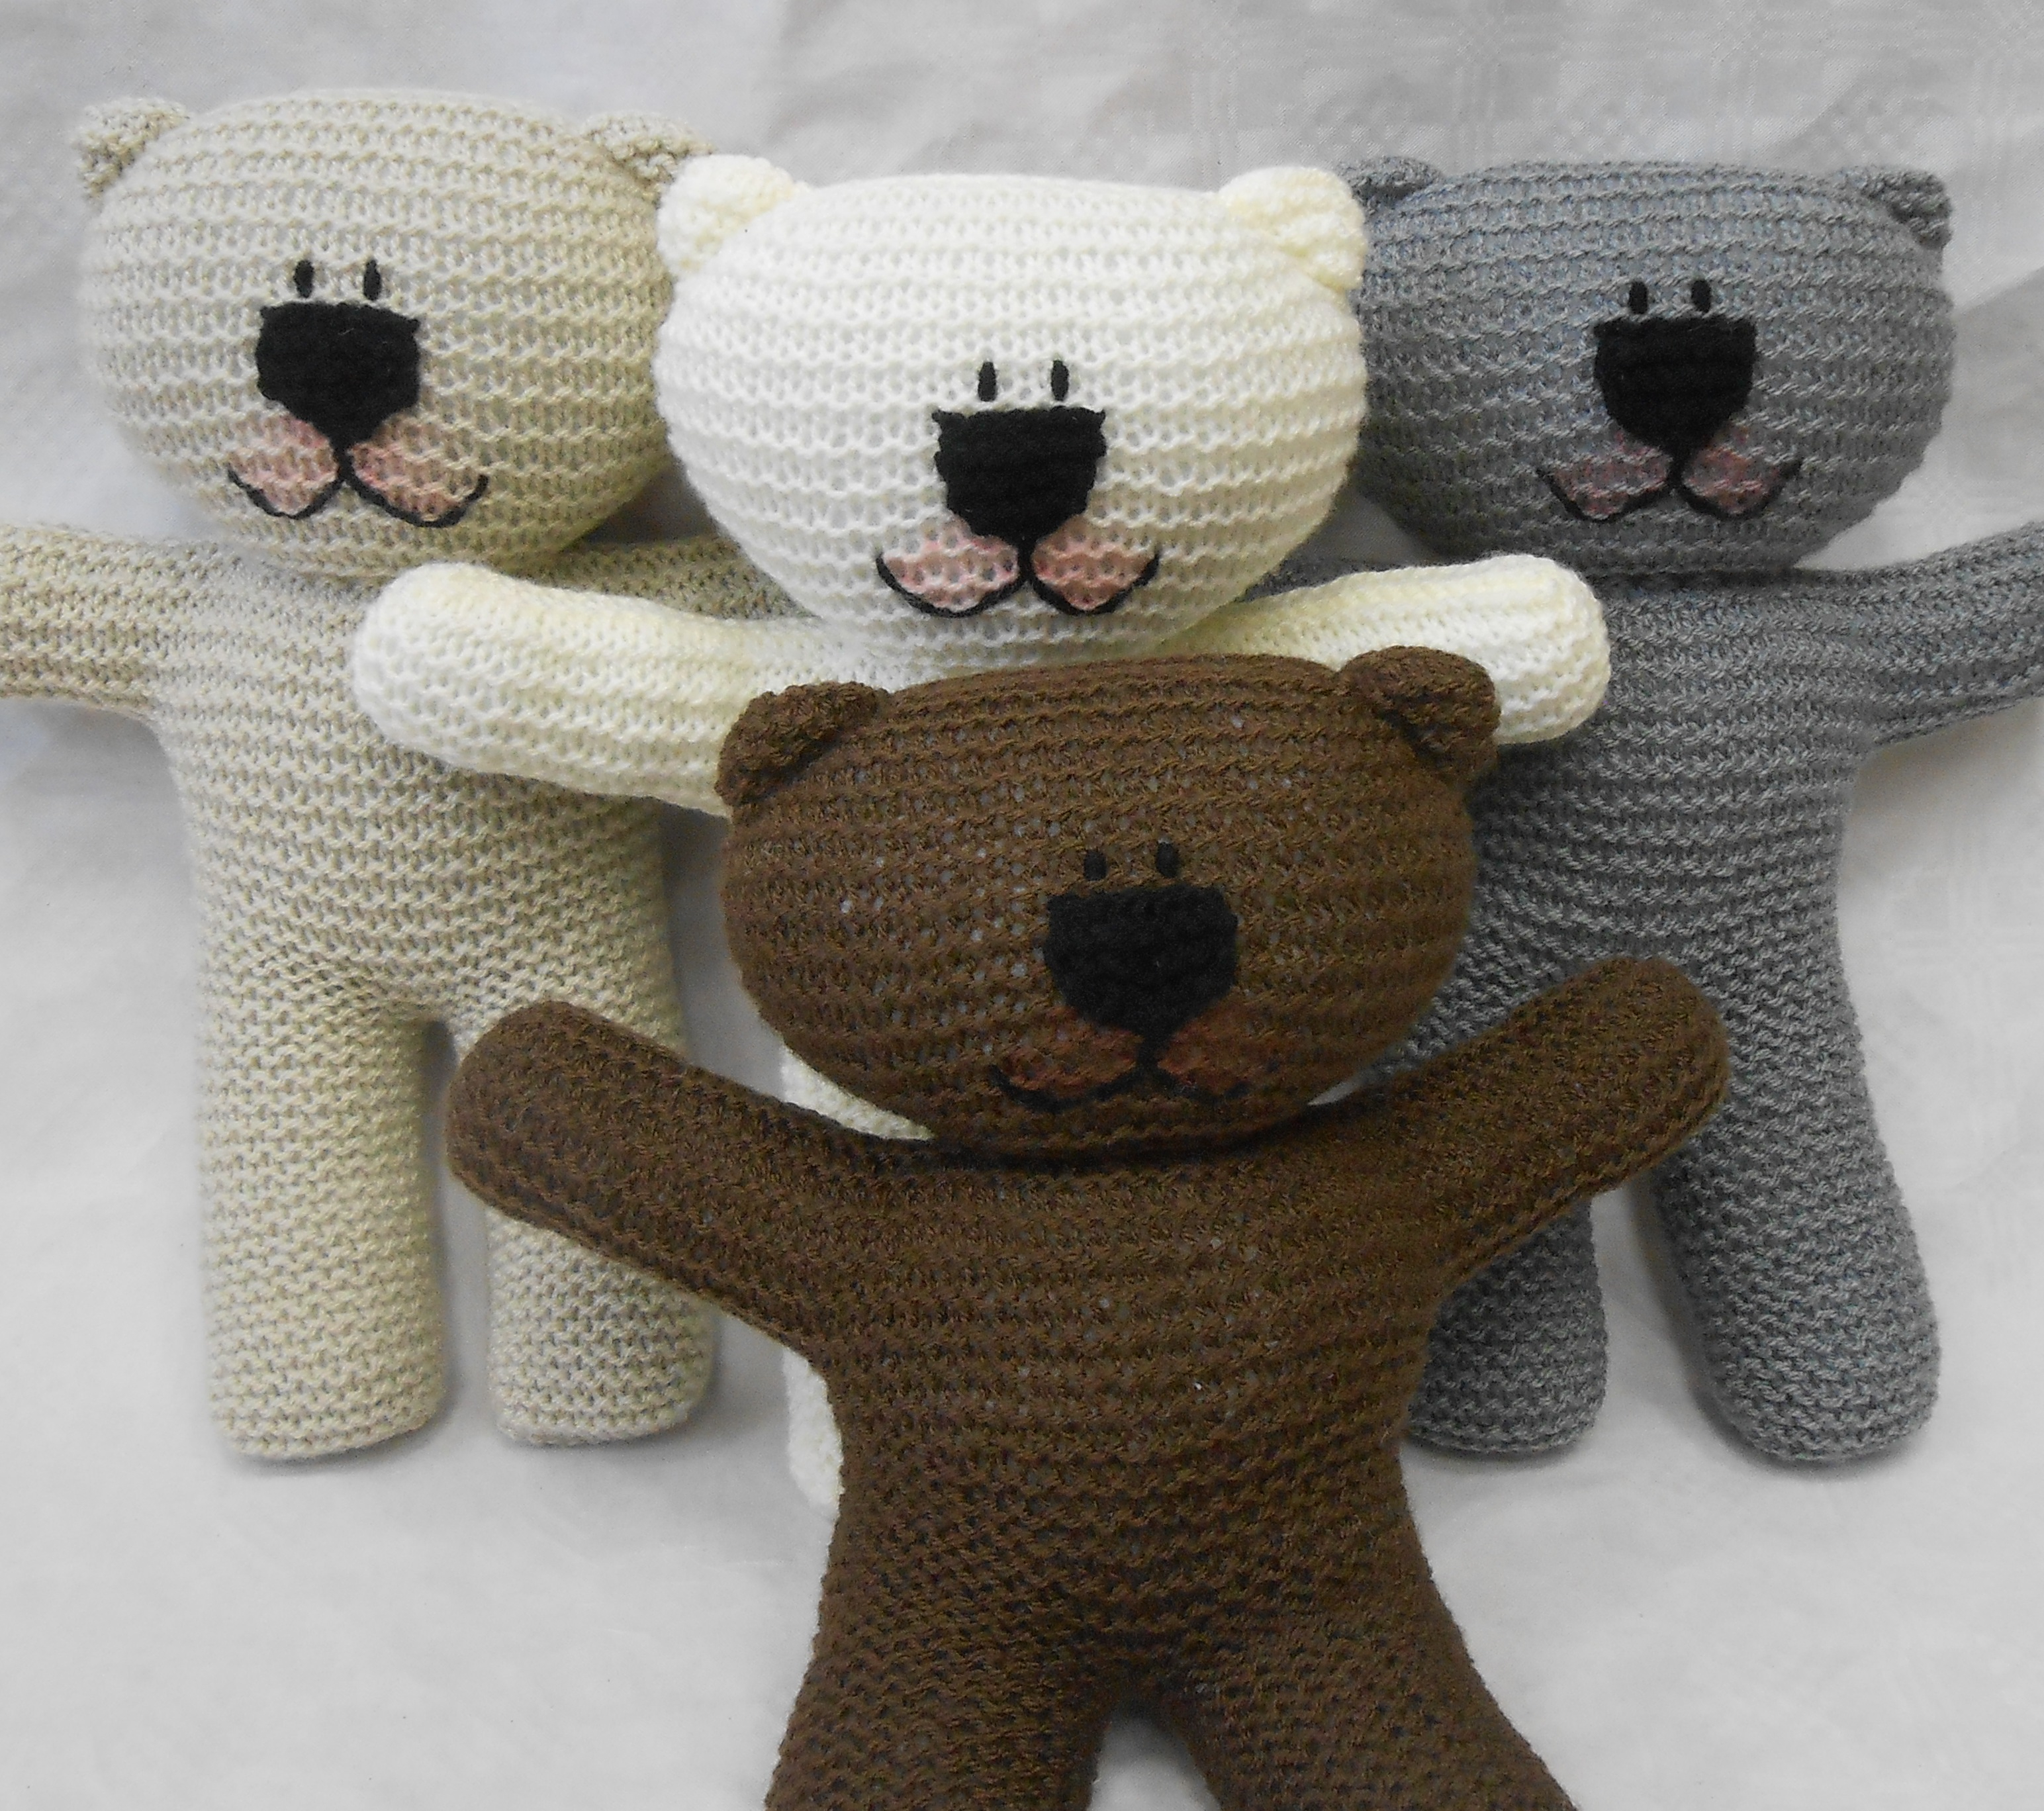 Pattern Knit Teddy Bear Easy Knit Pattern Suitable For Beginner Knitters With Illustrated Instructions Wooly Crew Ideal Learn To Knit Pattern